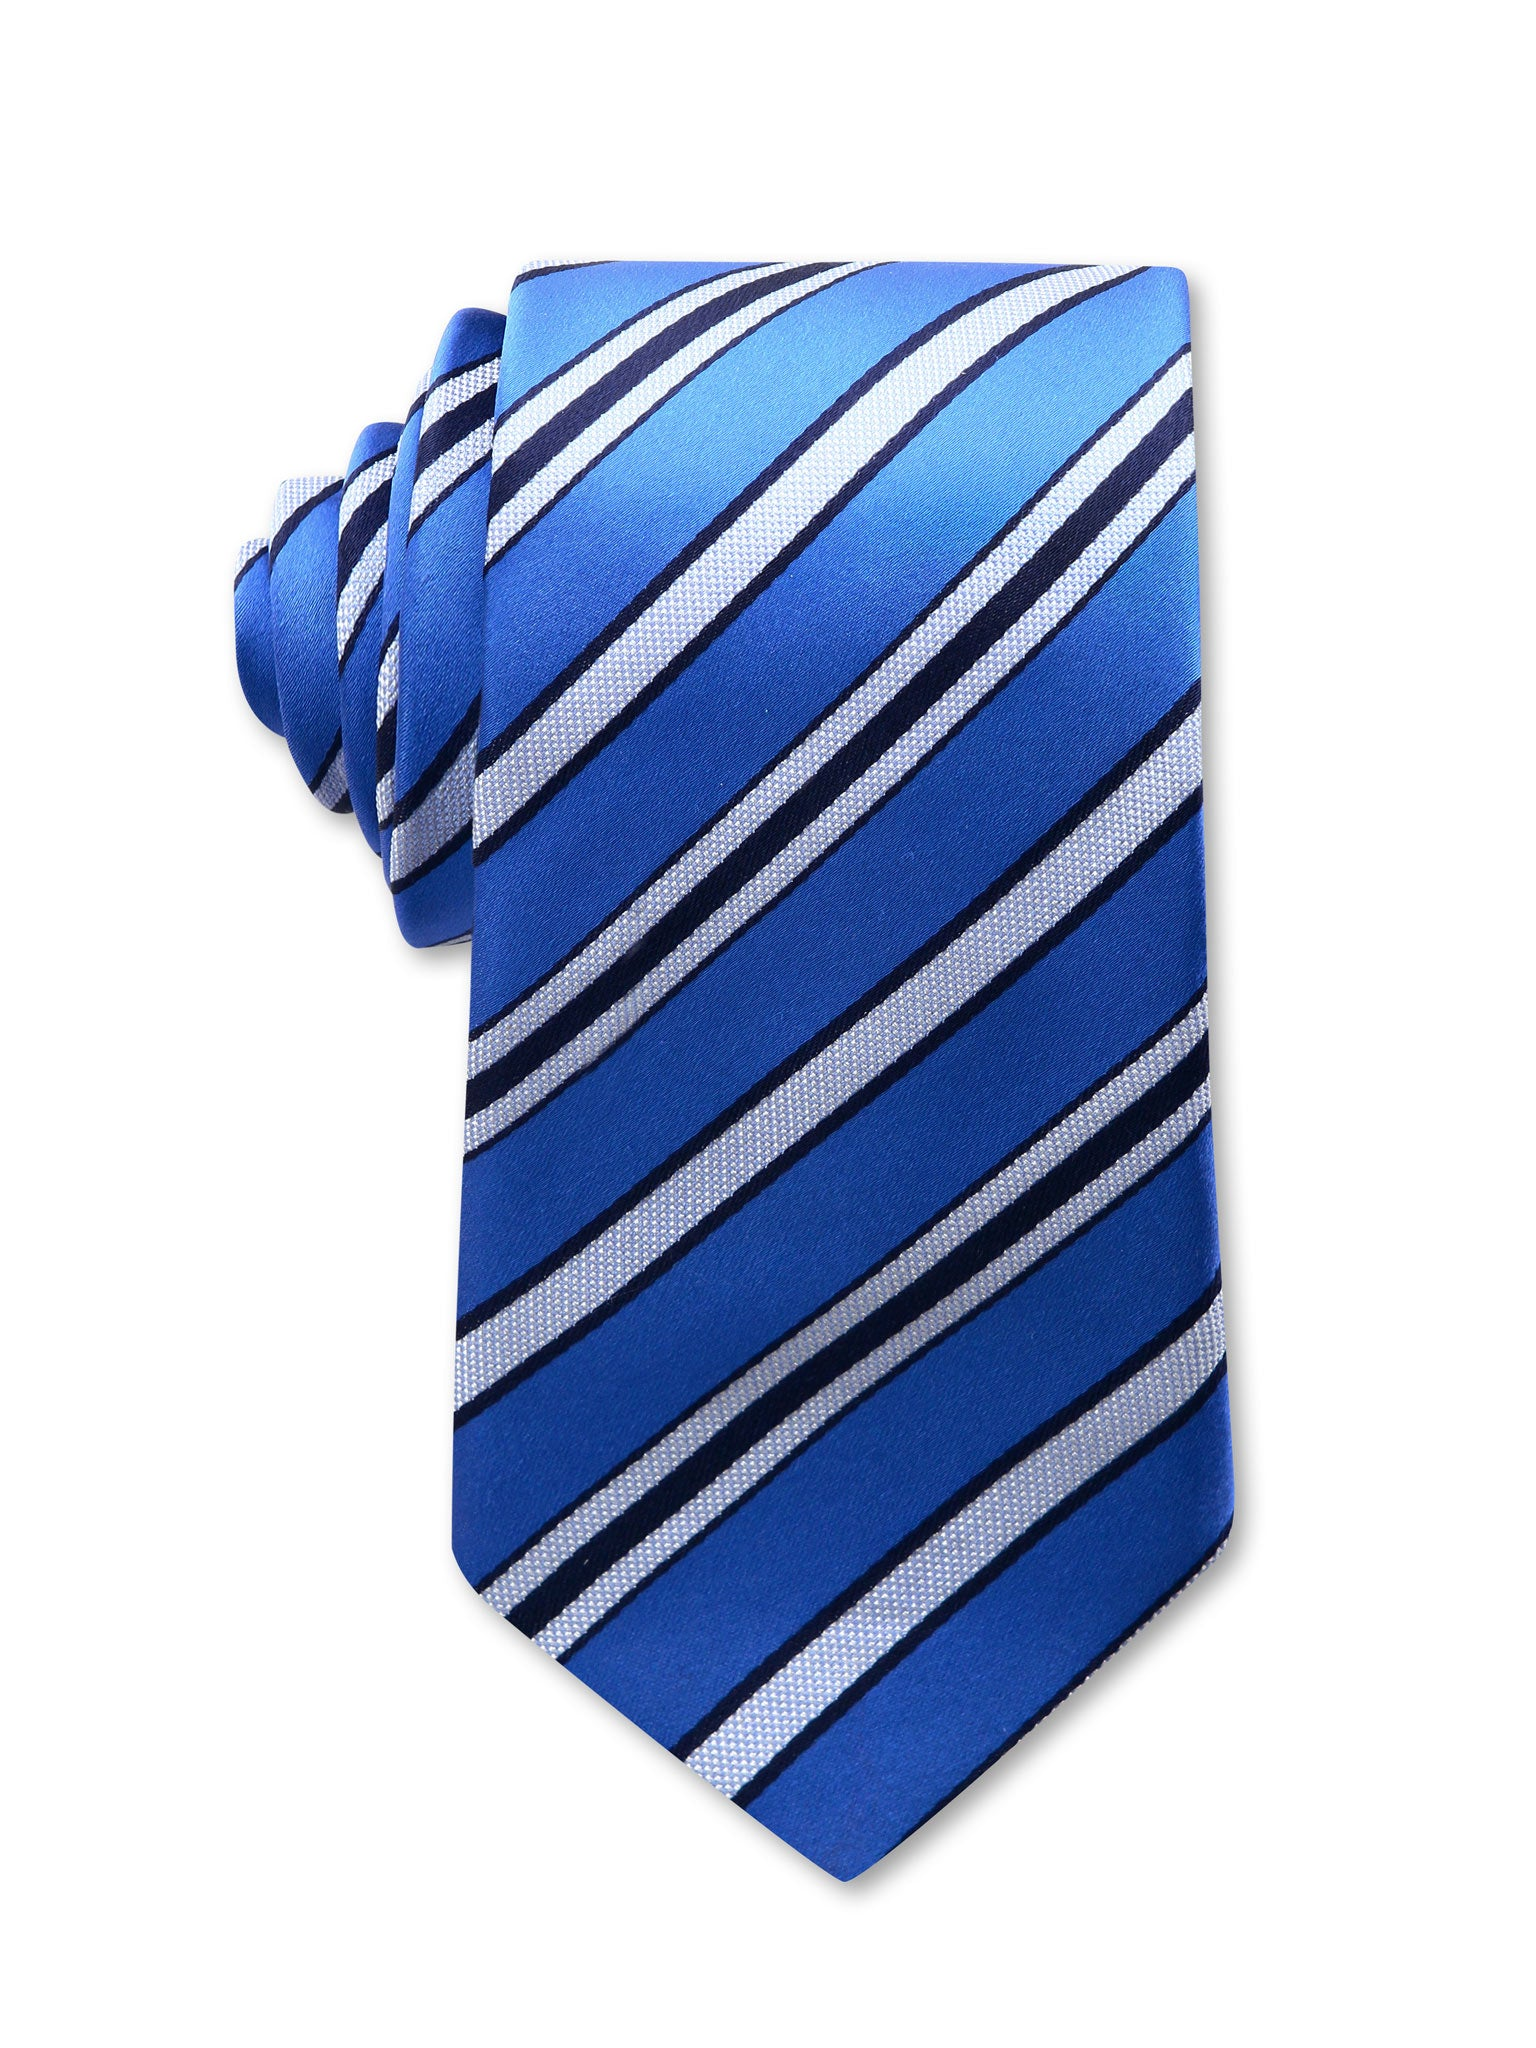 Blue White Navy Diagonal Stripe 7cm Lincoln Luxury Silk Tie Made in Australia